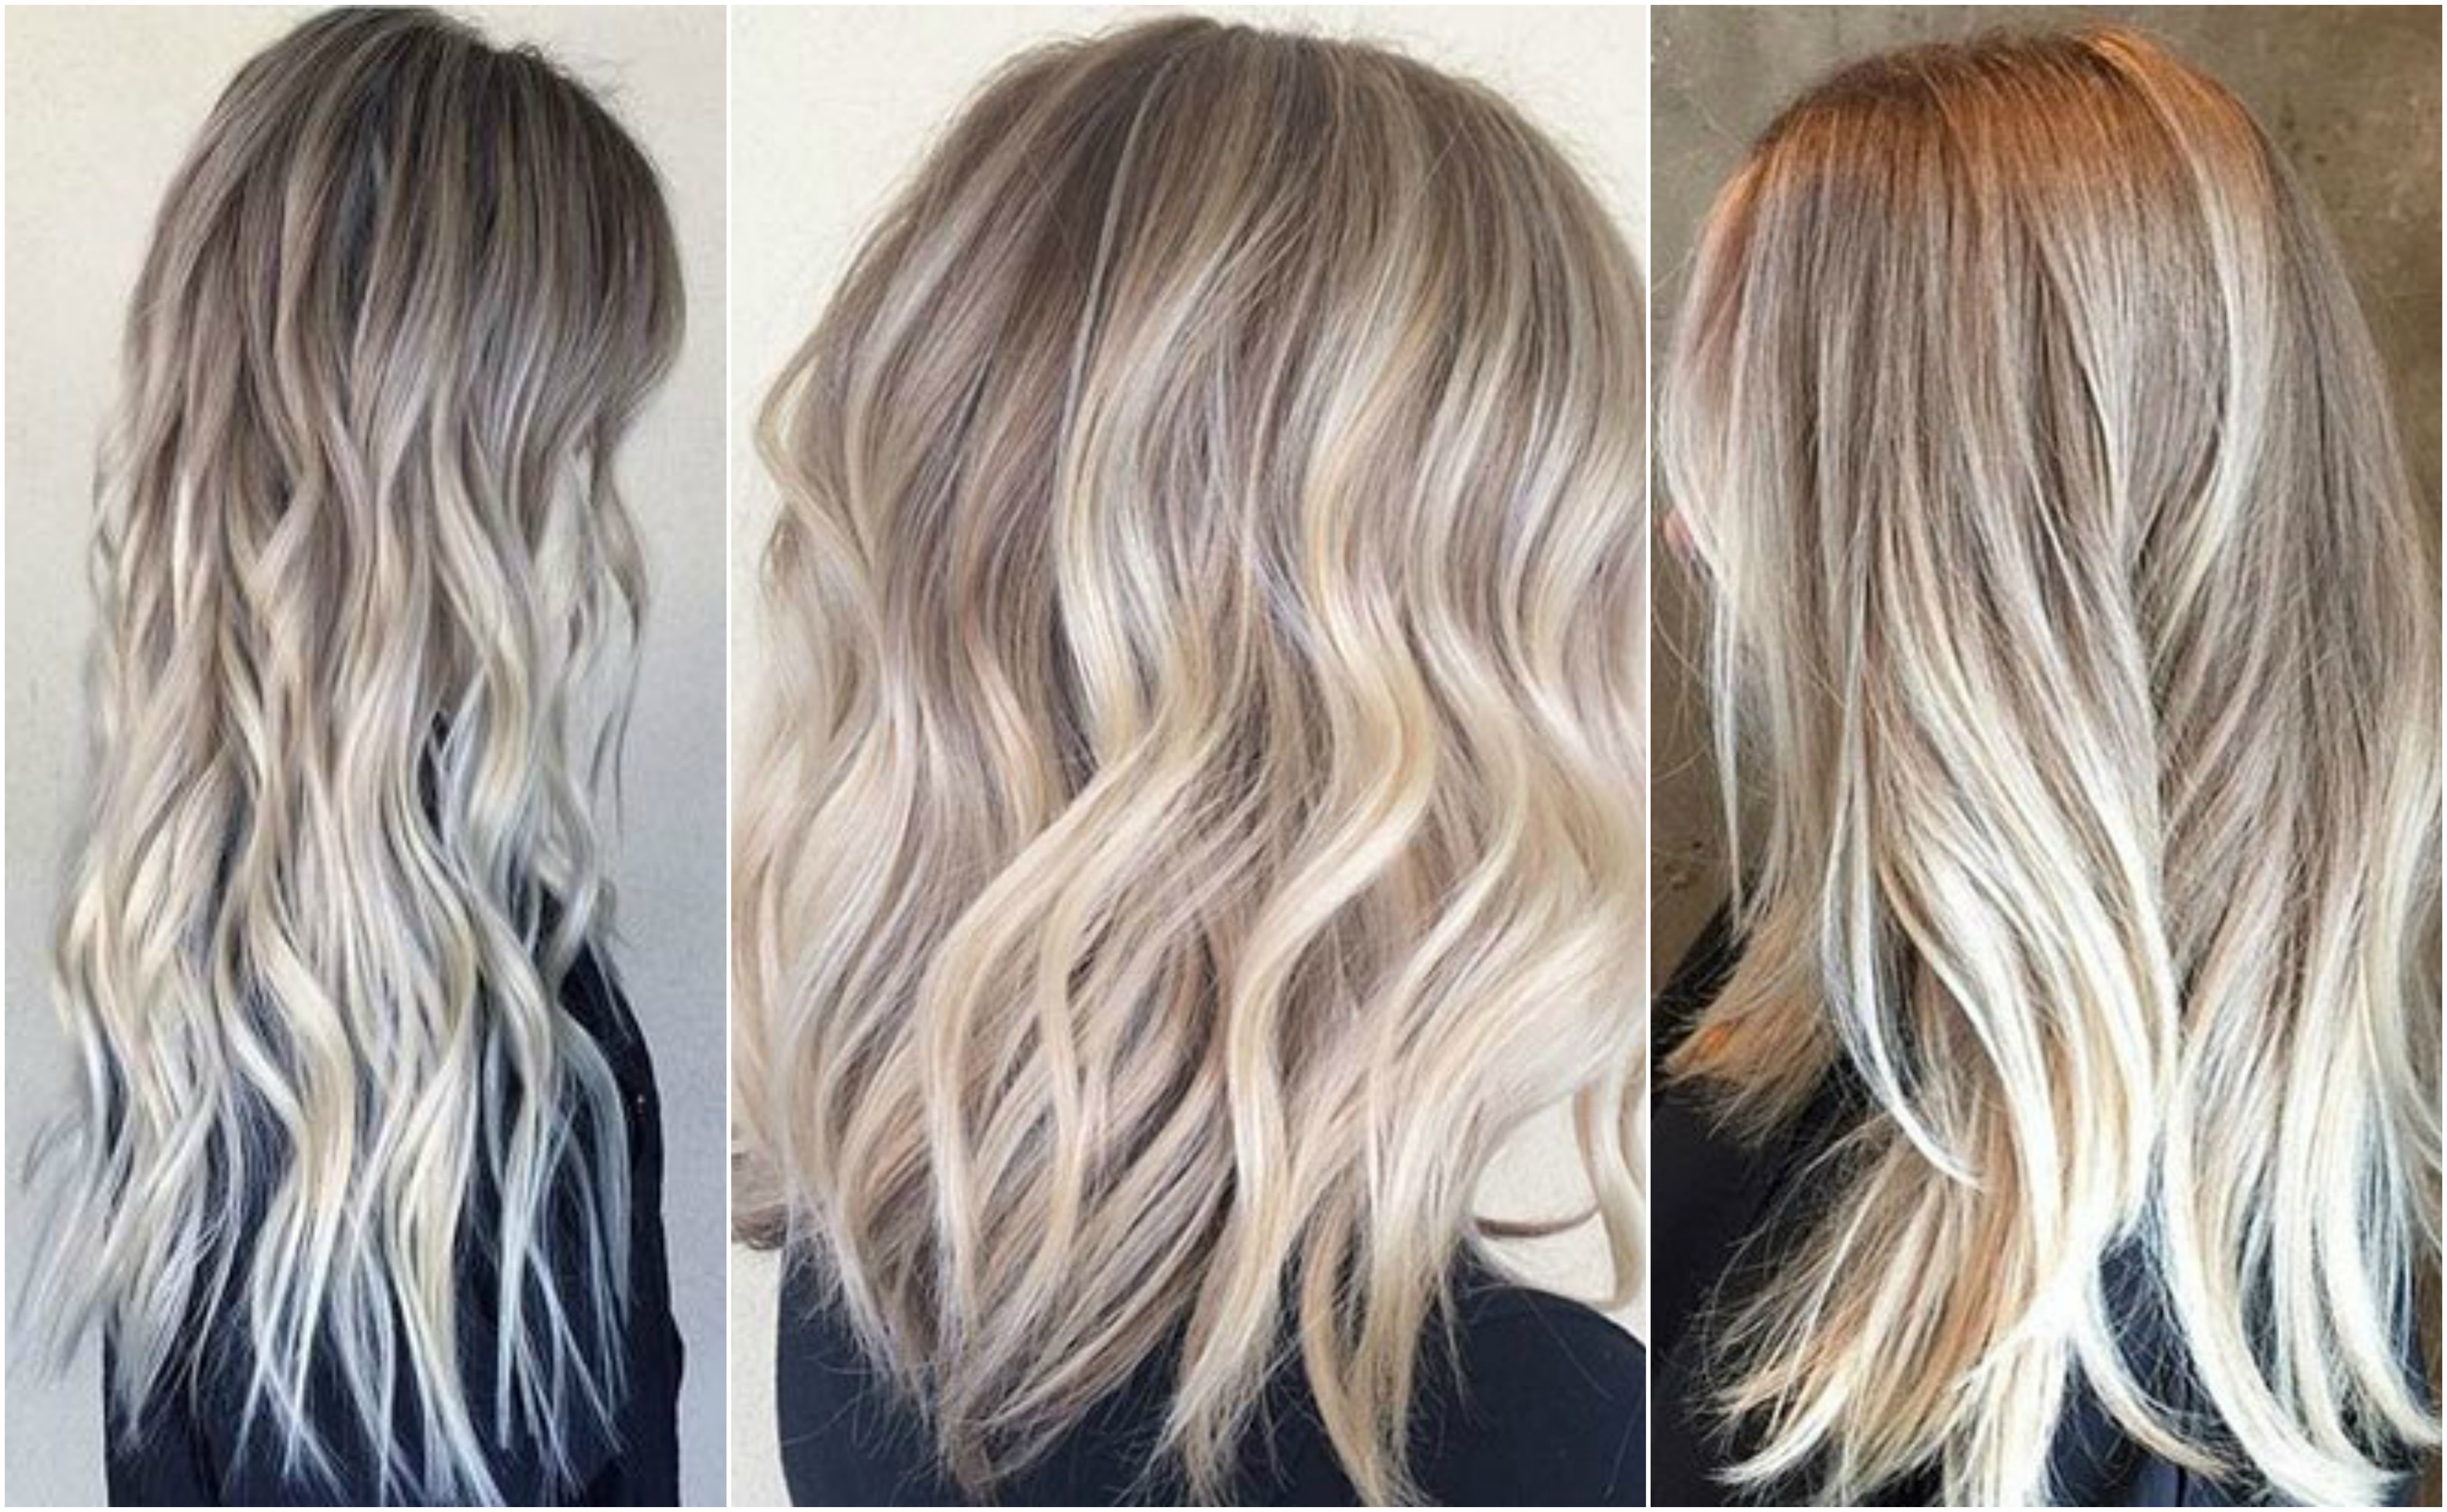 Blonde Ombre Hairstyles Colors: It's Time To Try The Crystal Ash Hair Trend